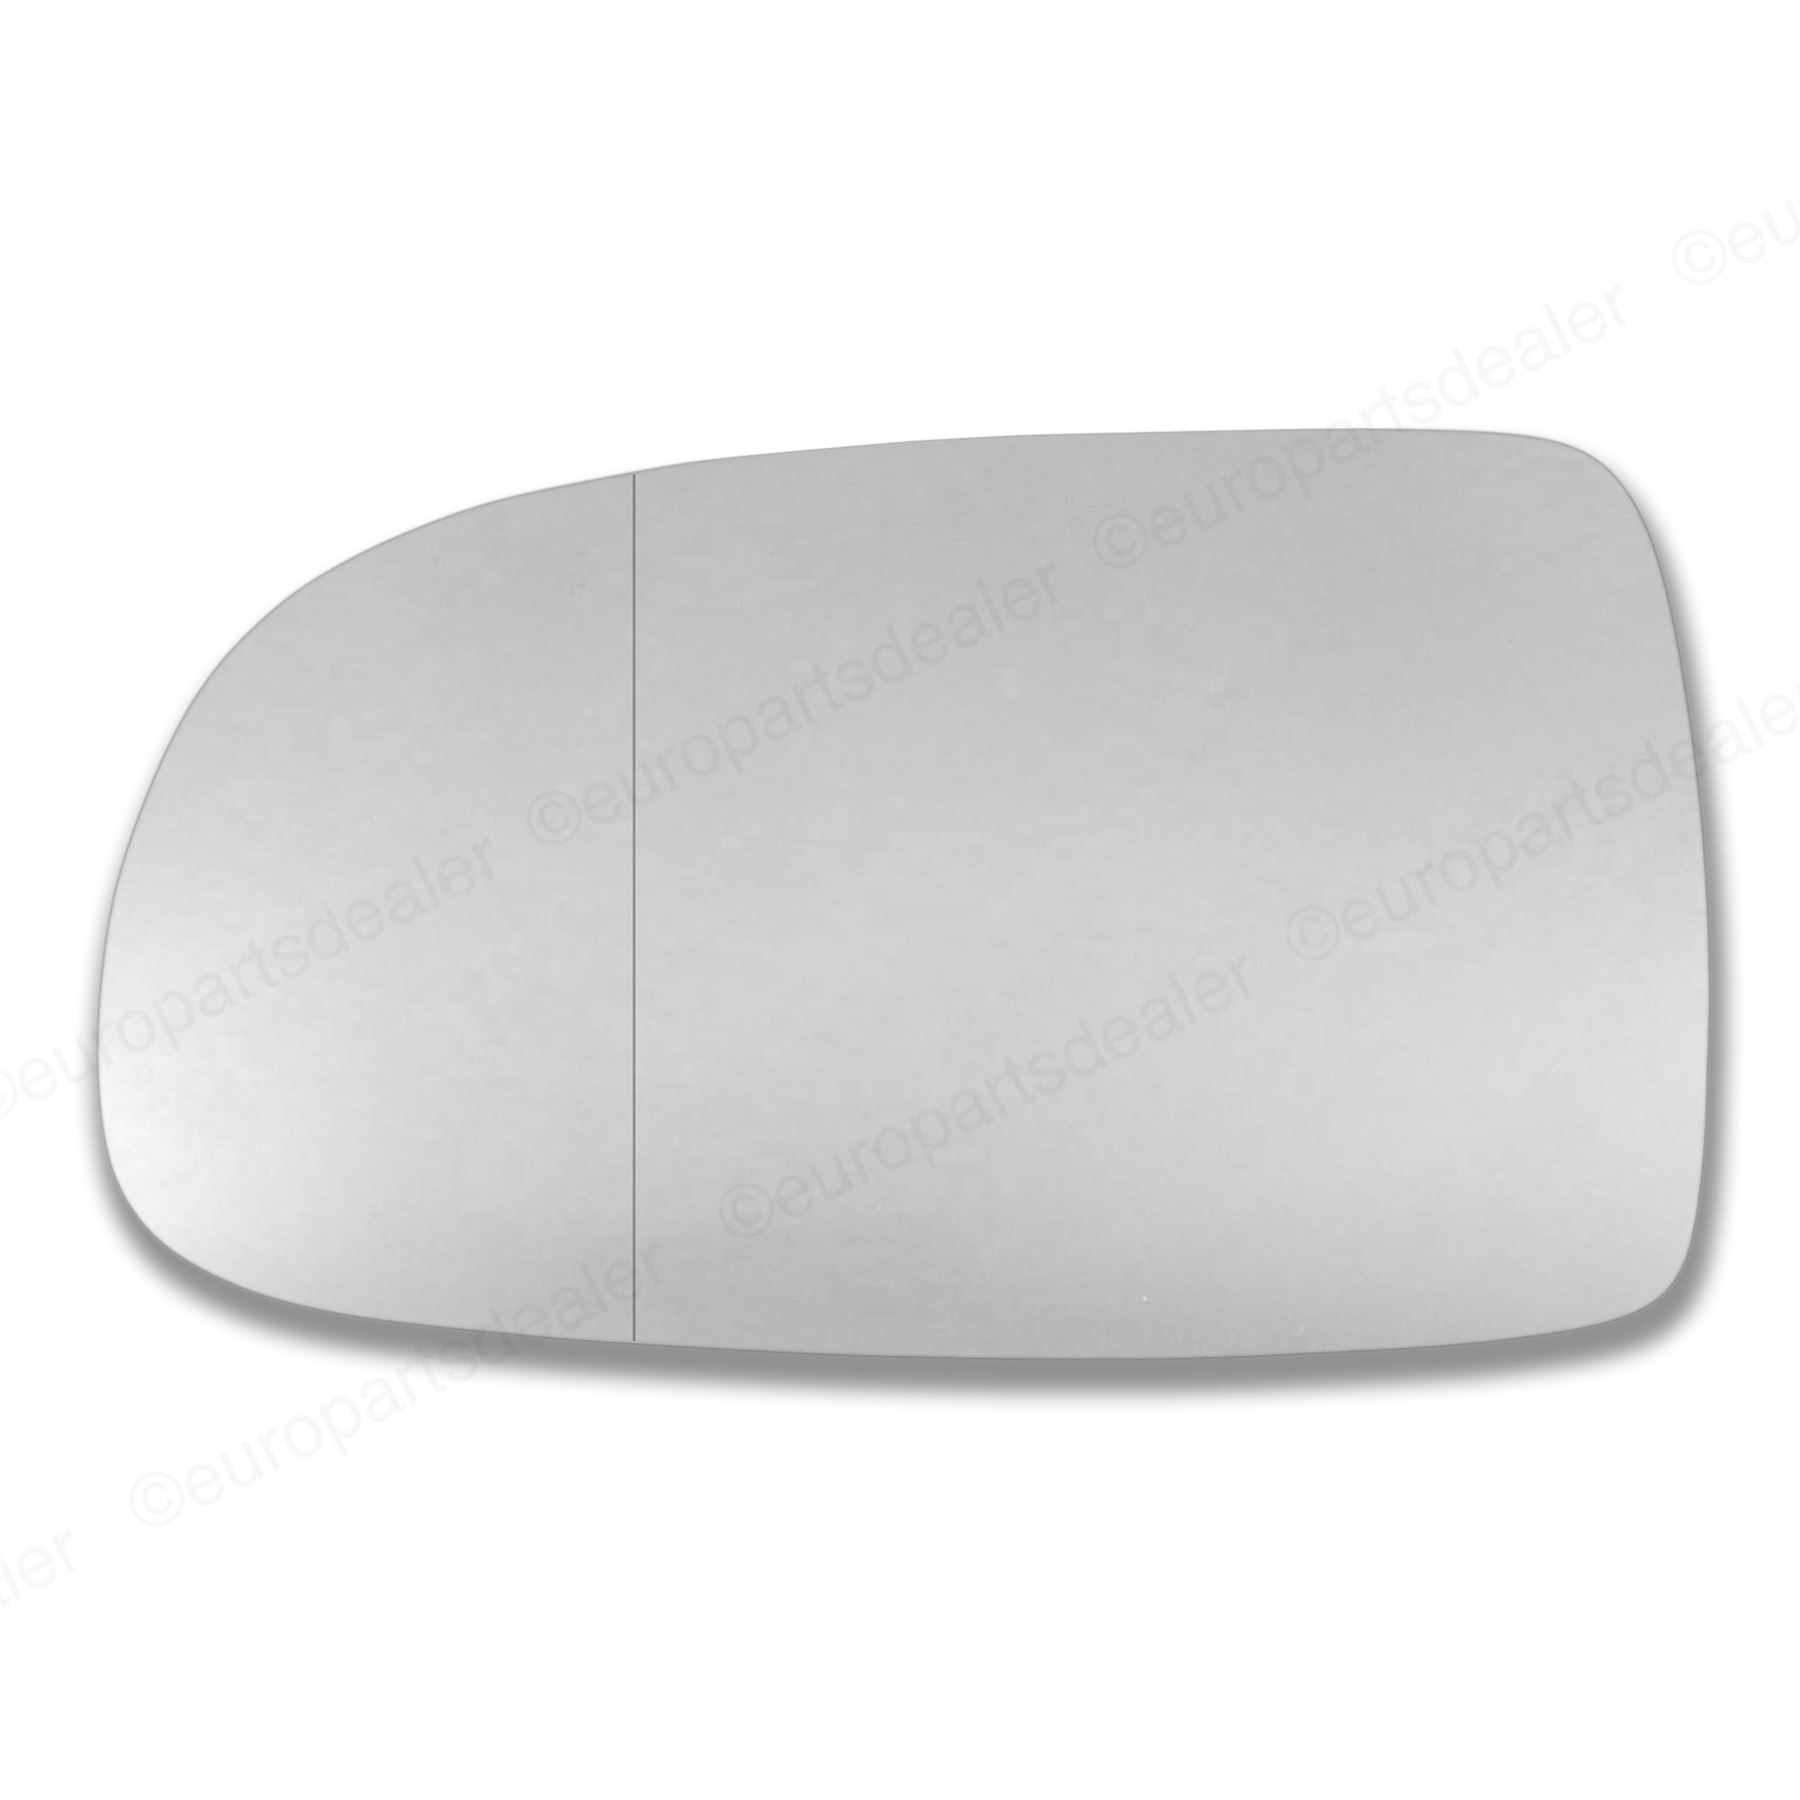 Left Passenger Side Wide Angle Wing Mirror Glass for VAUXHALL CORSA C 2001-2006